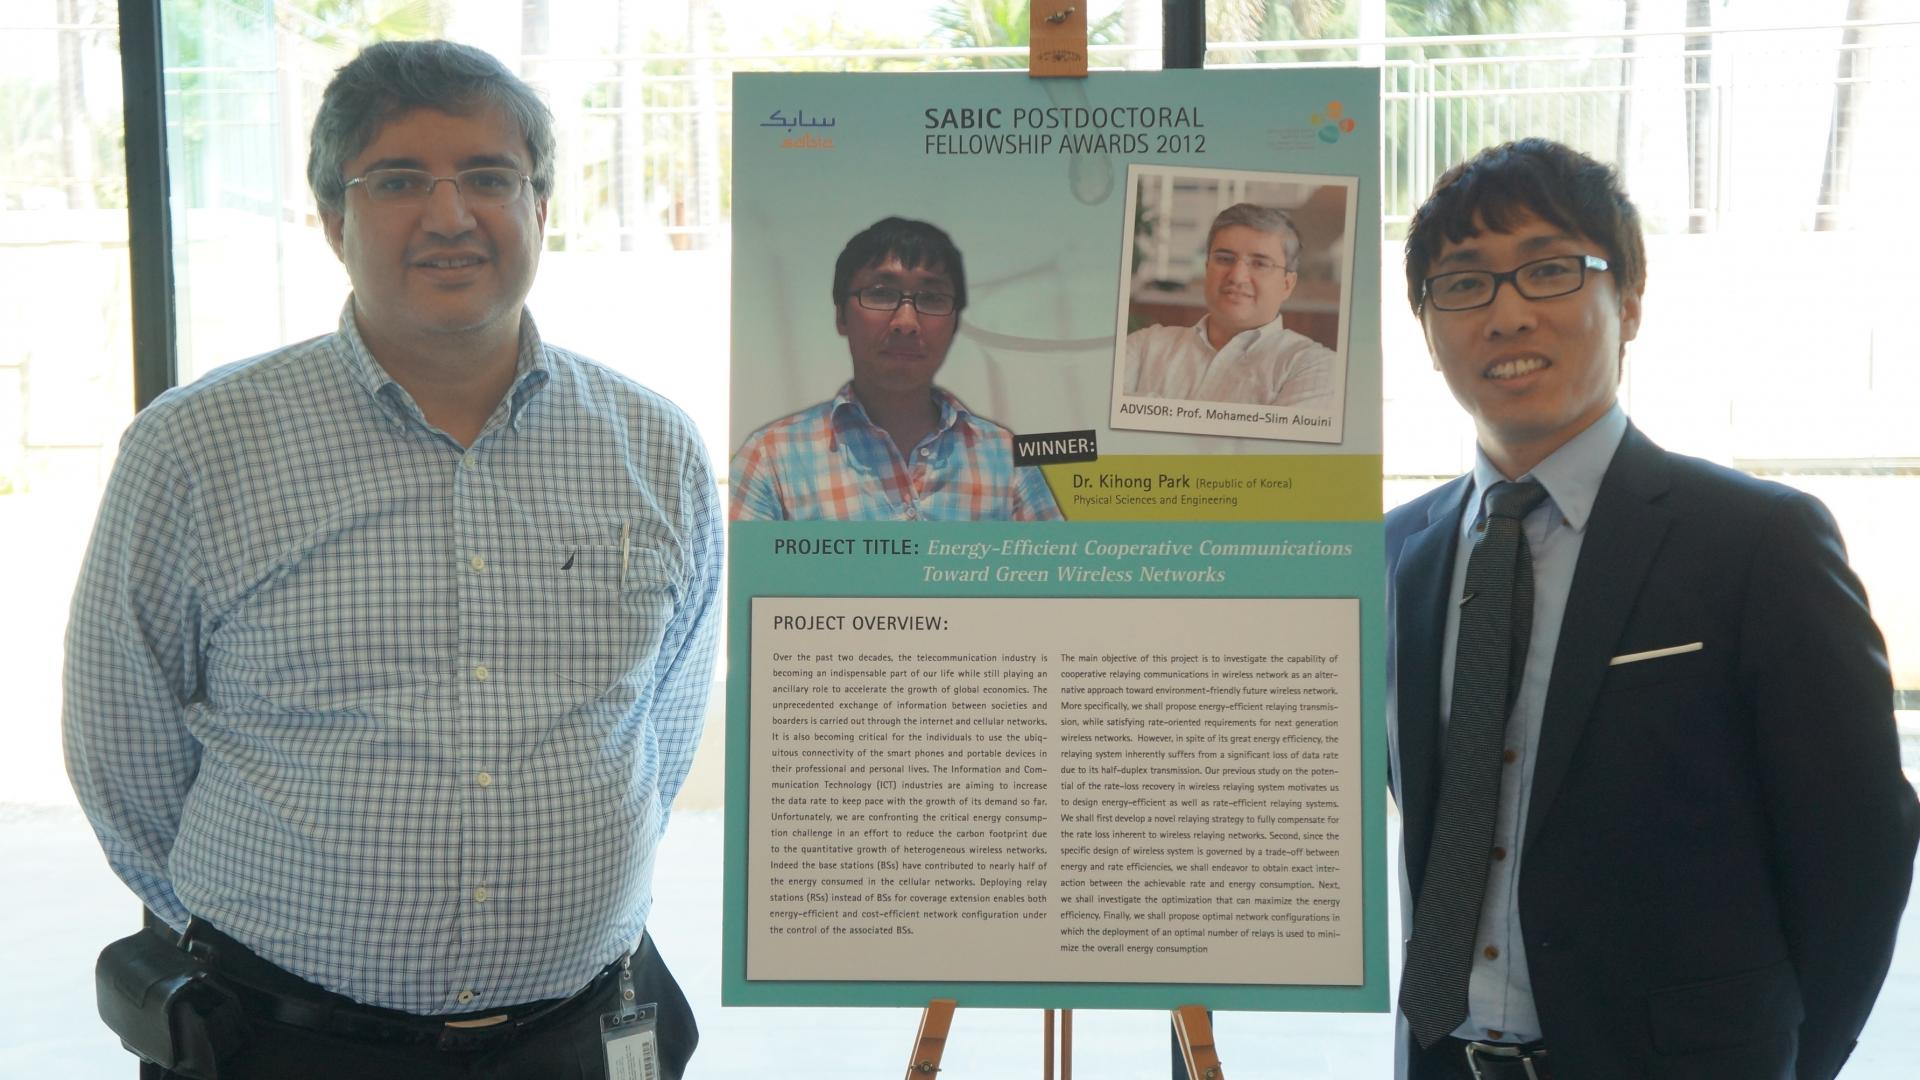 Kihong Park (Winner of Sabic Post Doctoral Fellowship Award) With Professor Mohamed-Slim Alouini